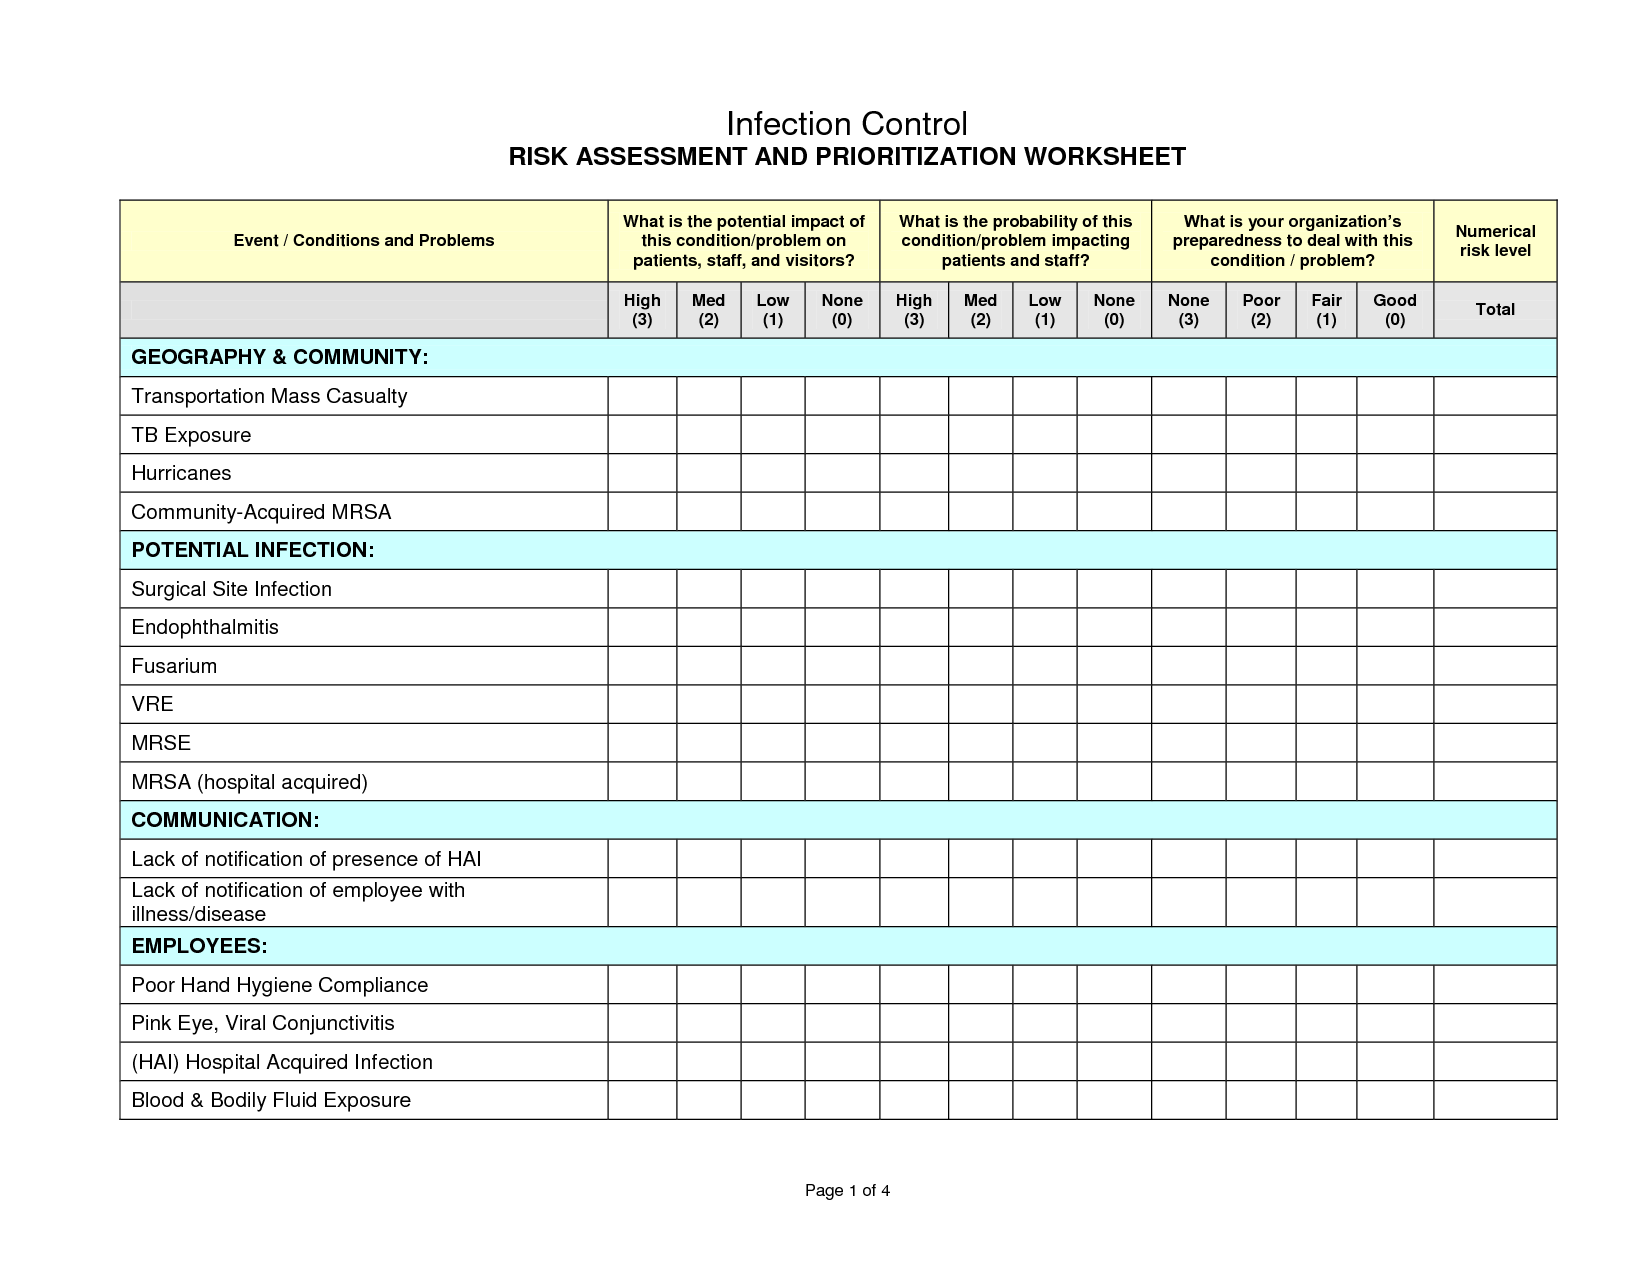 Infection Control Risk Assessment Worksheet